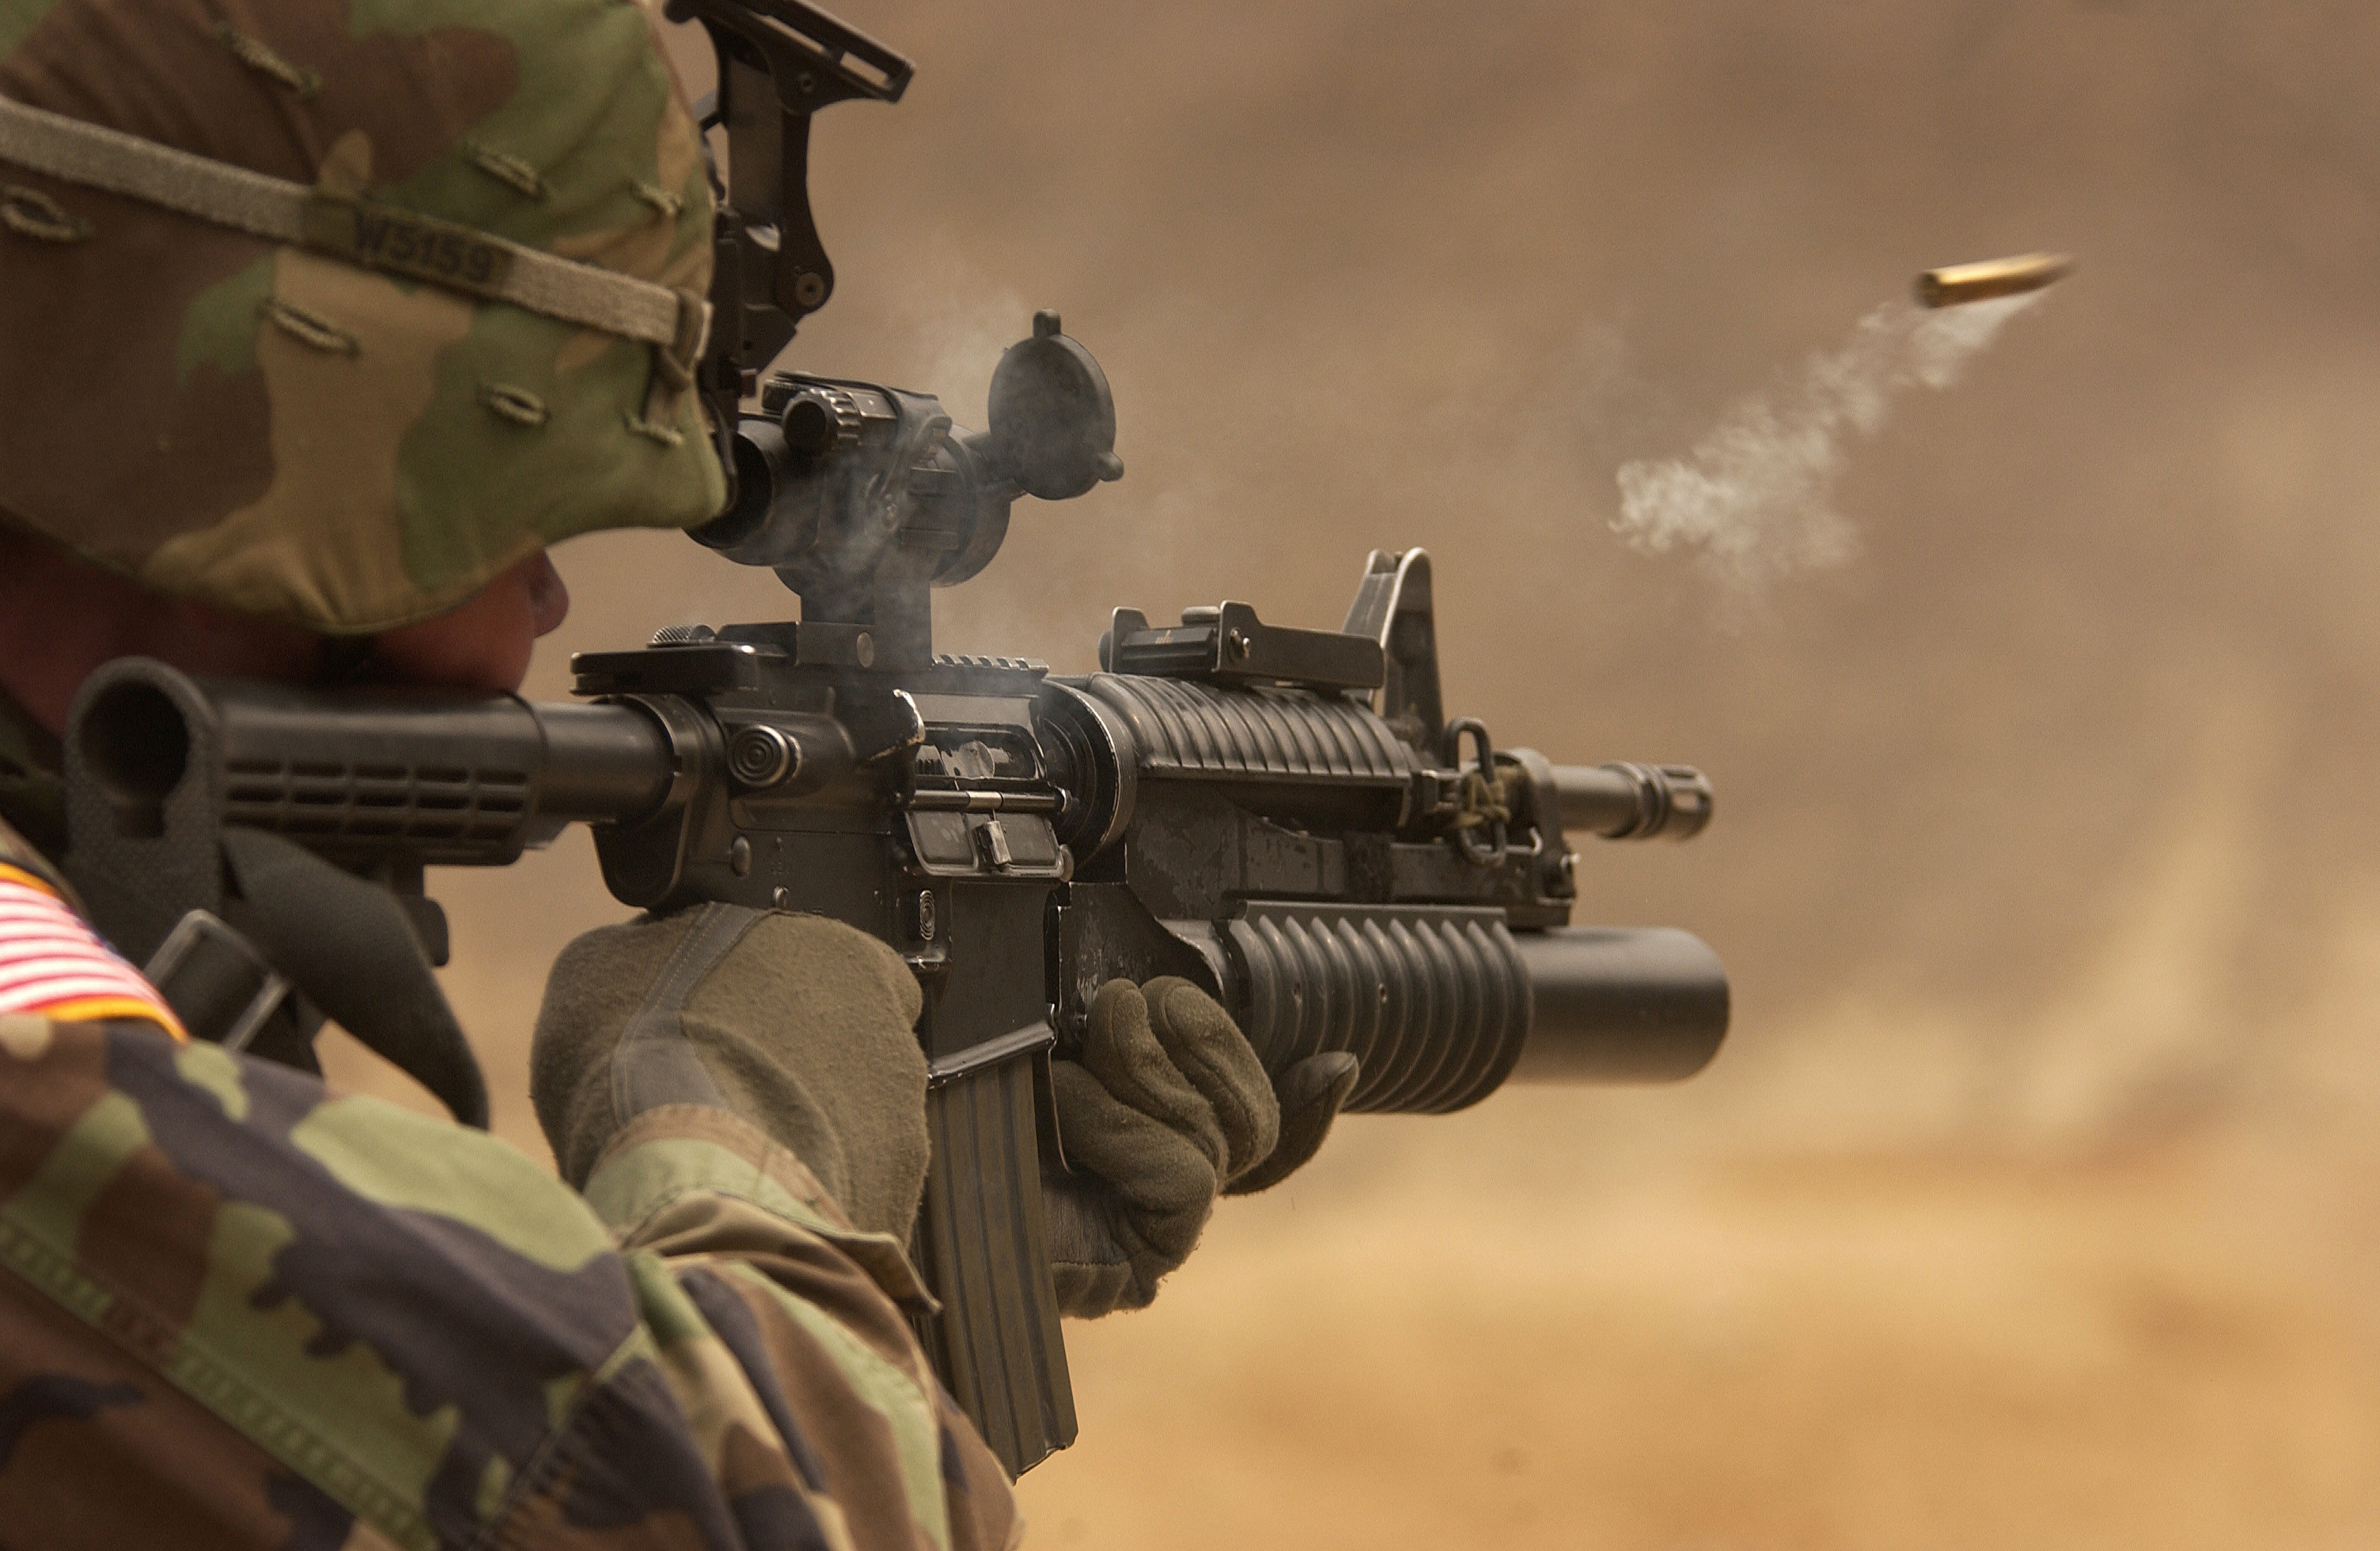 3008x1960 HD Wallpaper | Background Image ID:11385.  Military Soldier